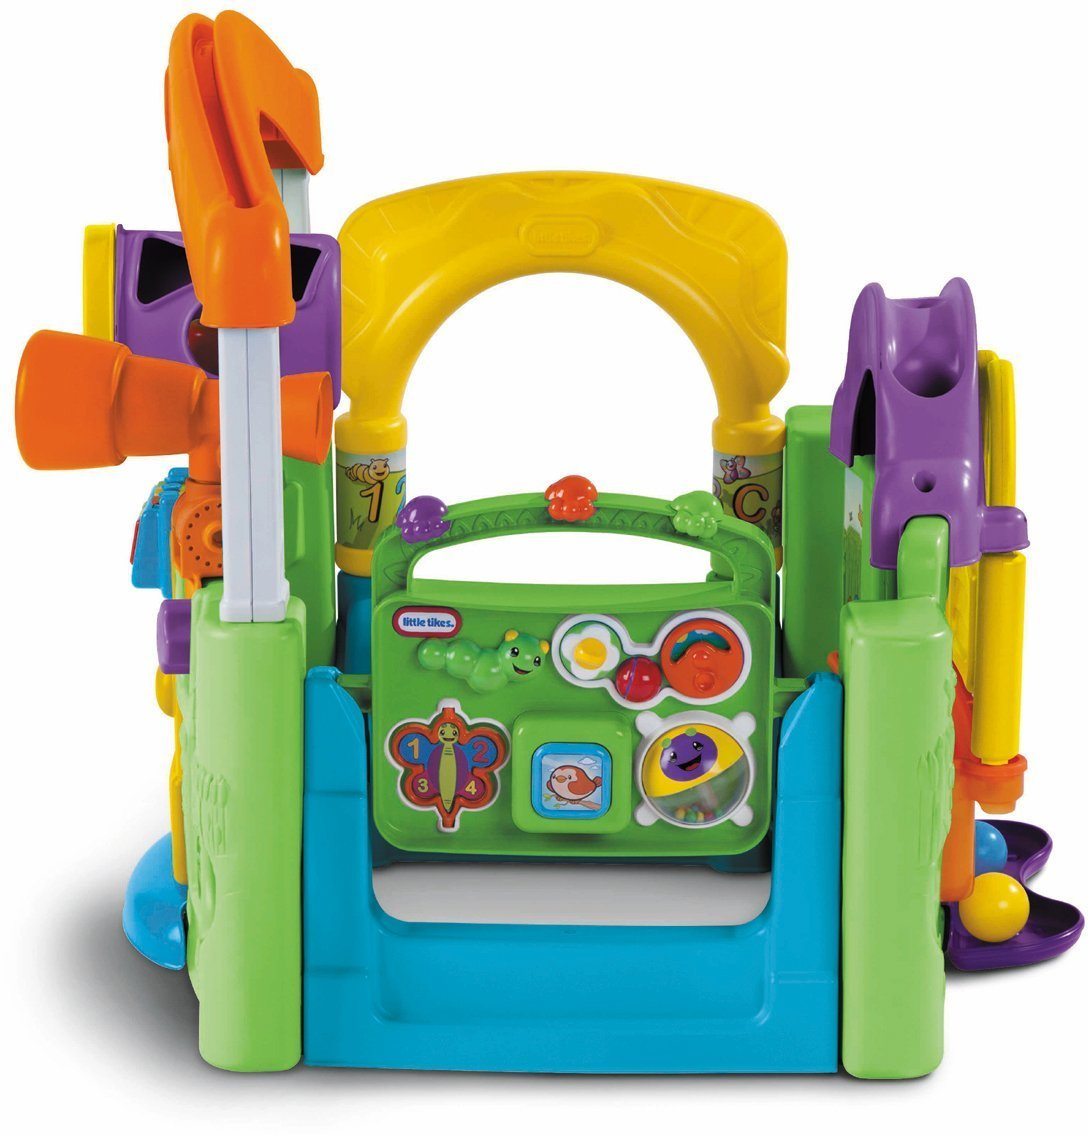 Baby Activity Toys : Baby activity center garden playset indoor toddler